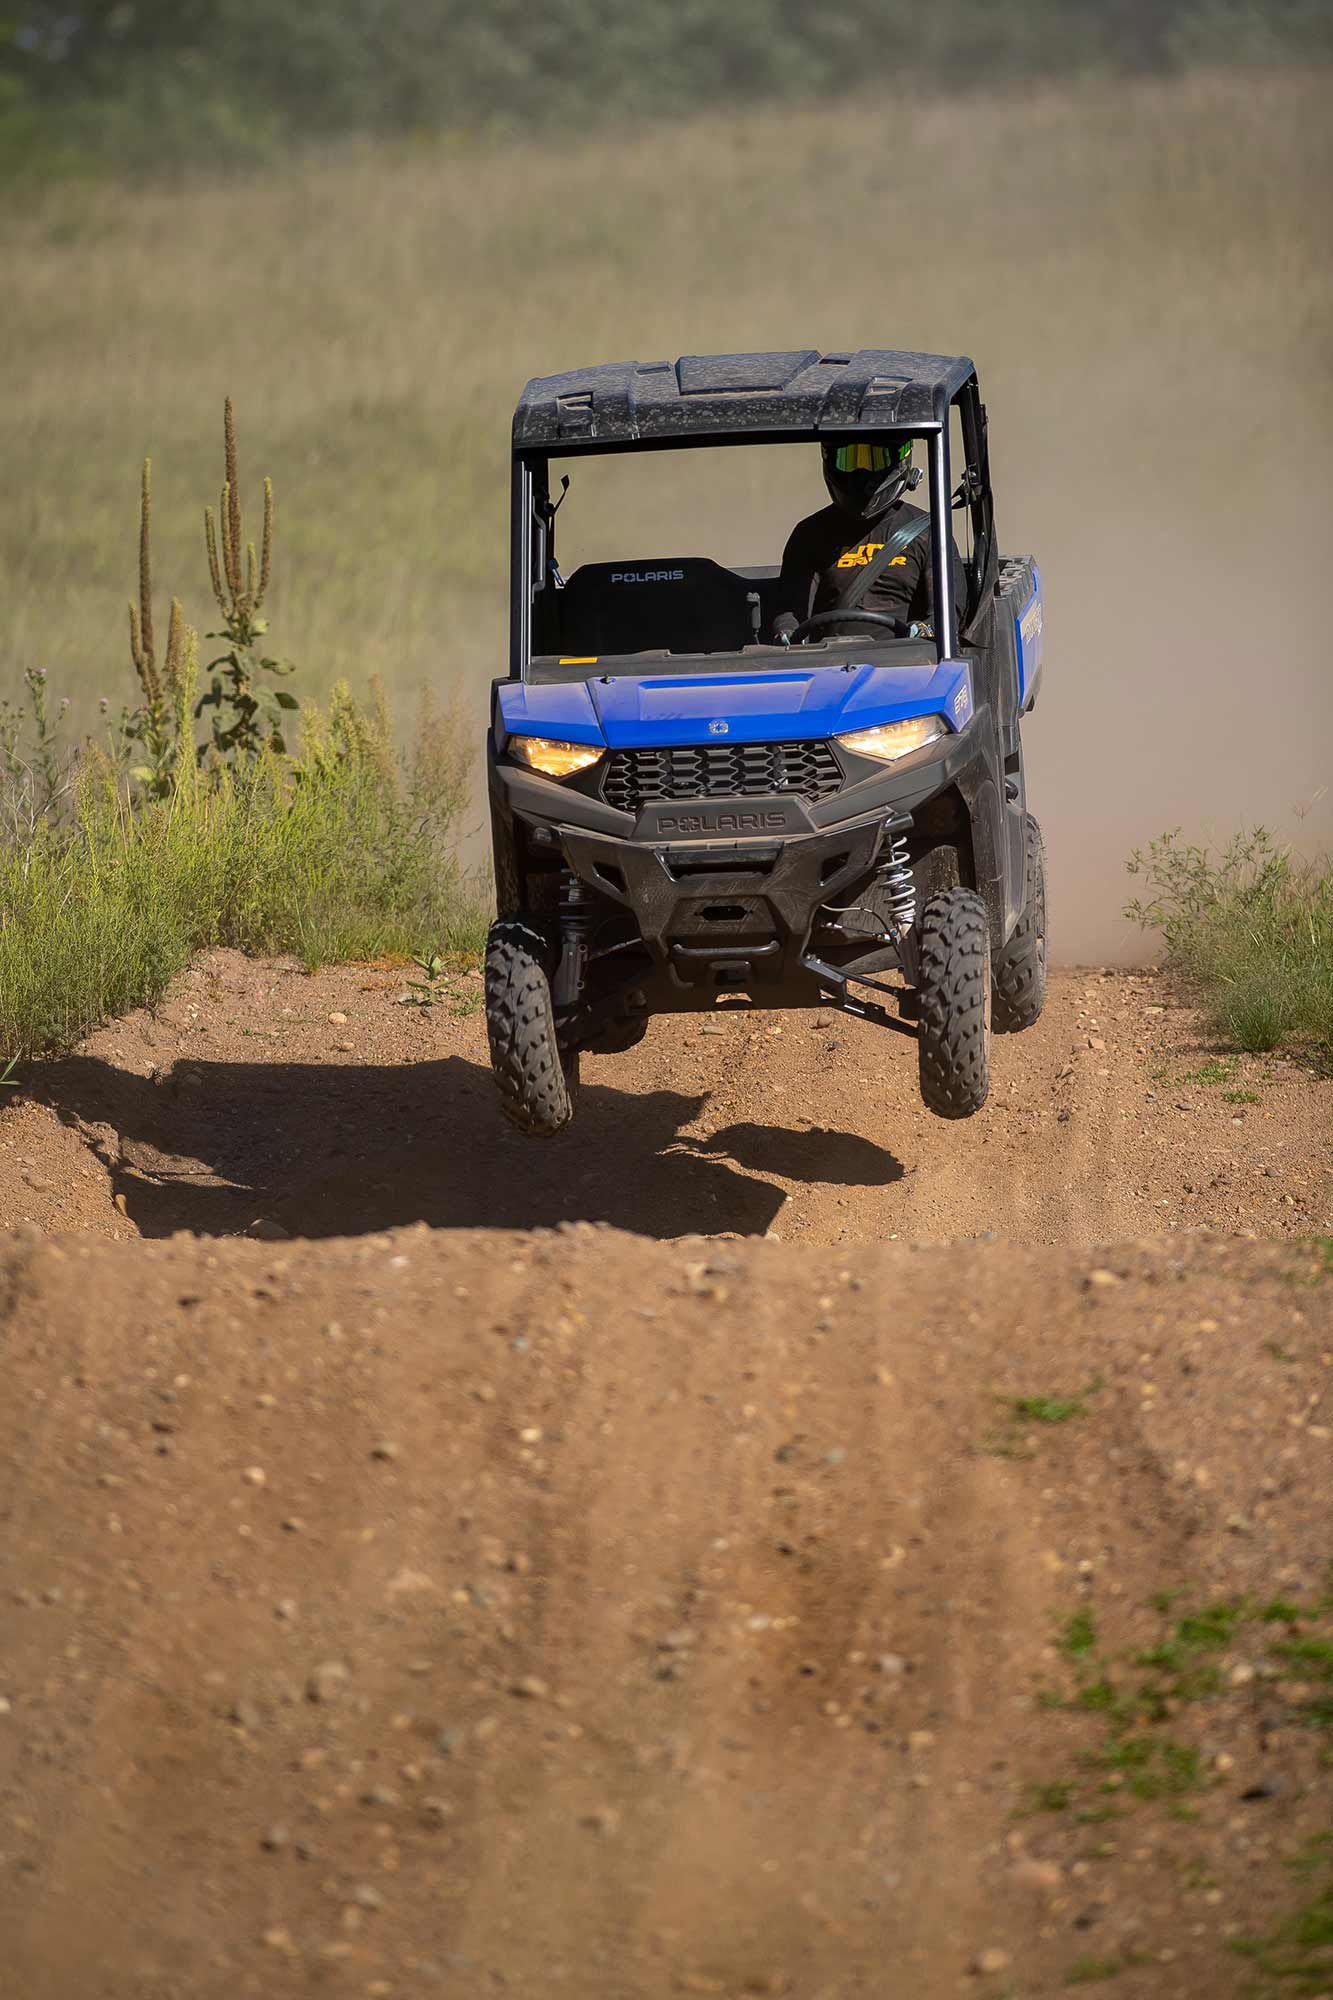 The Ranger SP 570 isn't just for work. With excellent suspension, it's made to have some fun too.